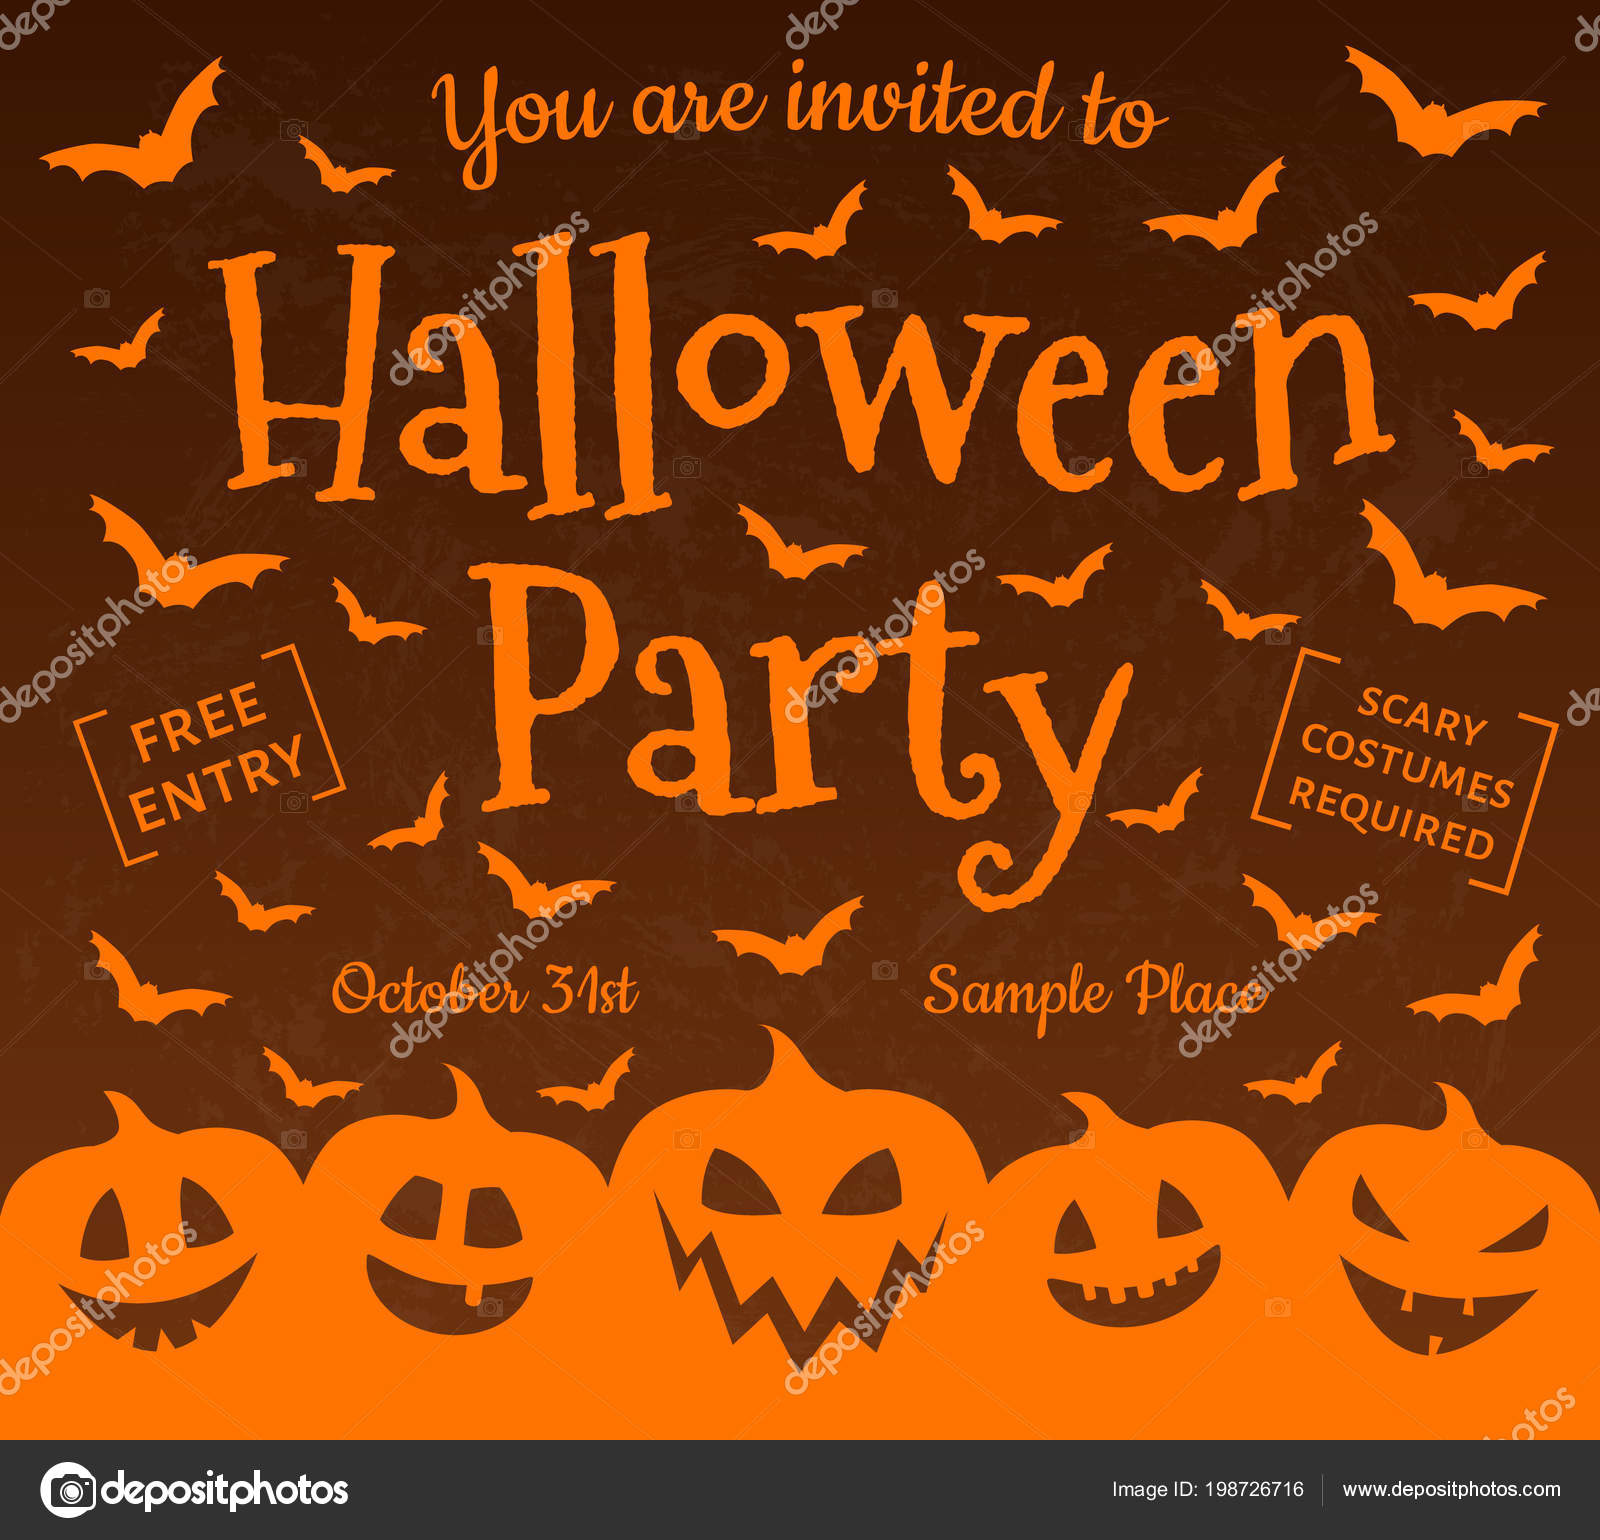 Invitation Halloween Party Scary Poster Vector — Stock Vector ...